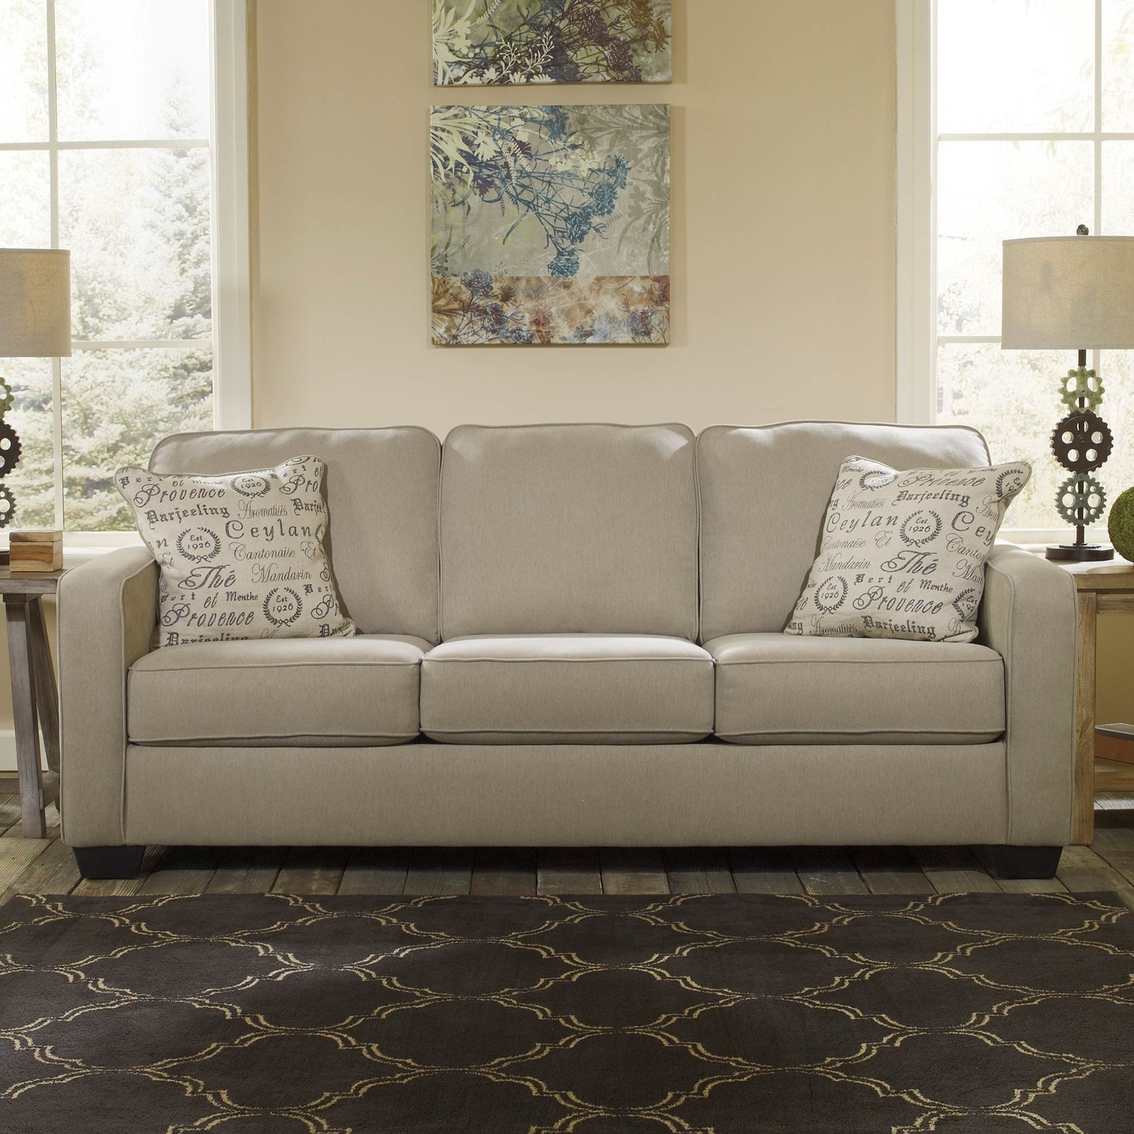 Ashley Alenya Queen Sleeper Sofa picture on Ashley Alenya Queen Sleeper Sofa6597187 with Ashley Alenya Queen Sleeper Sofa, sofa eedb4f98fb335bc9fad732d6be17d0bd